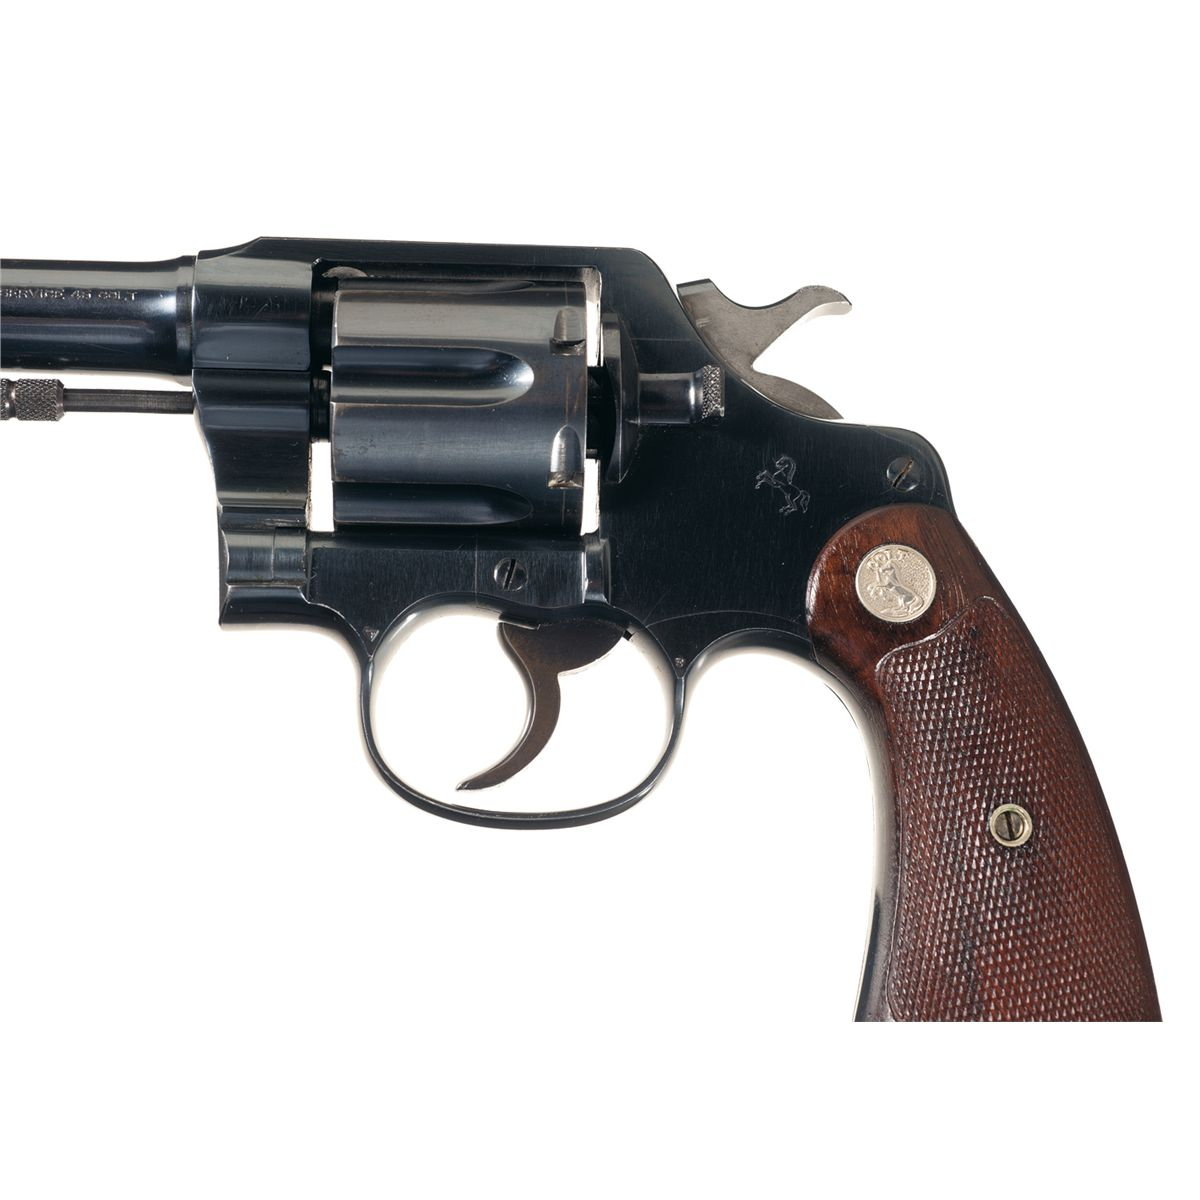 Scarce Colt Service Model Double Action Revolver In 45